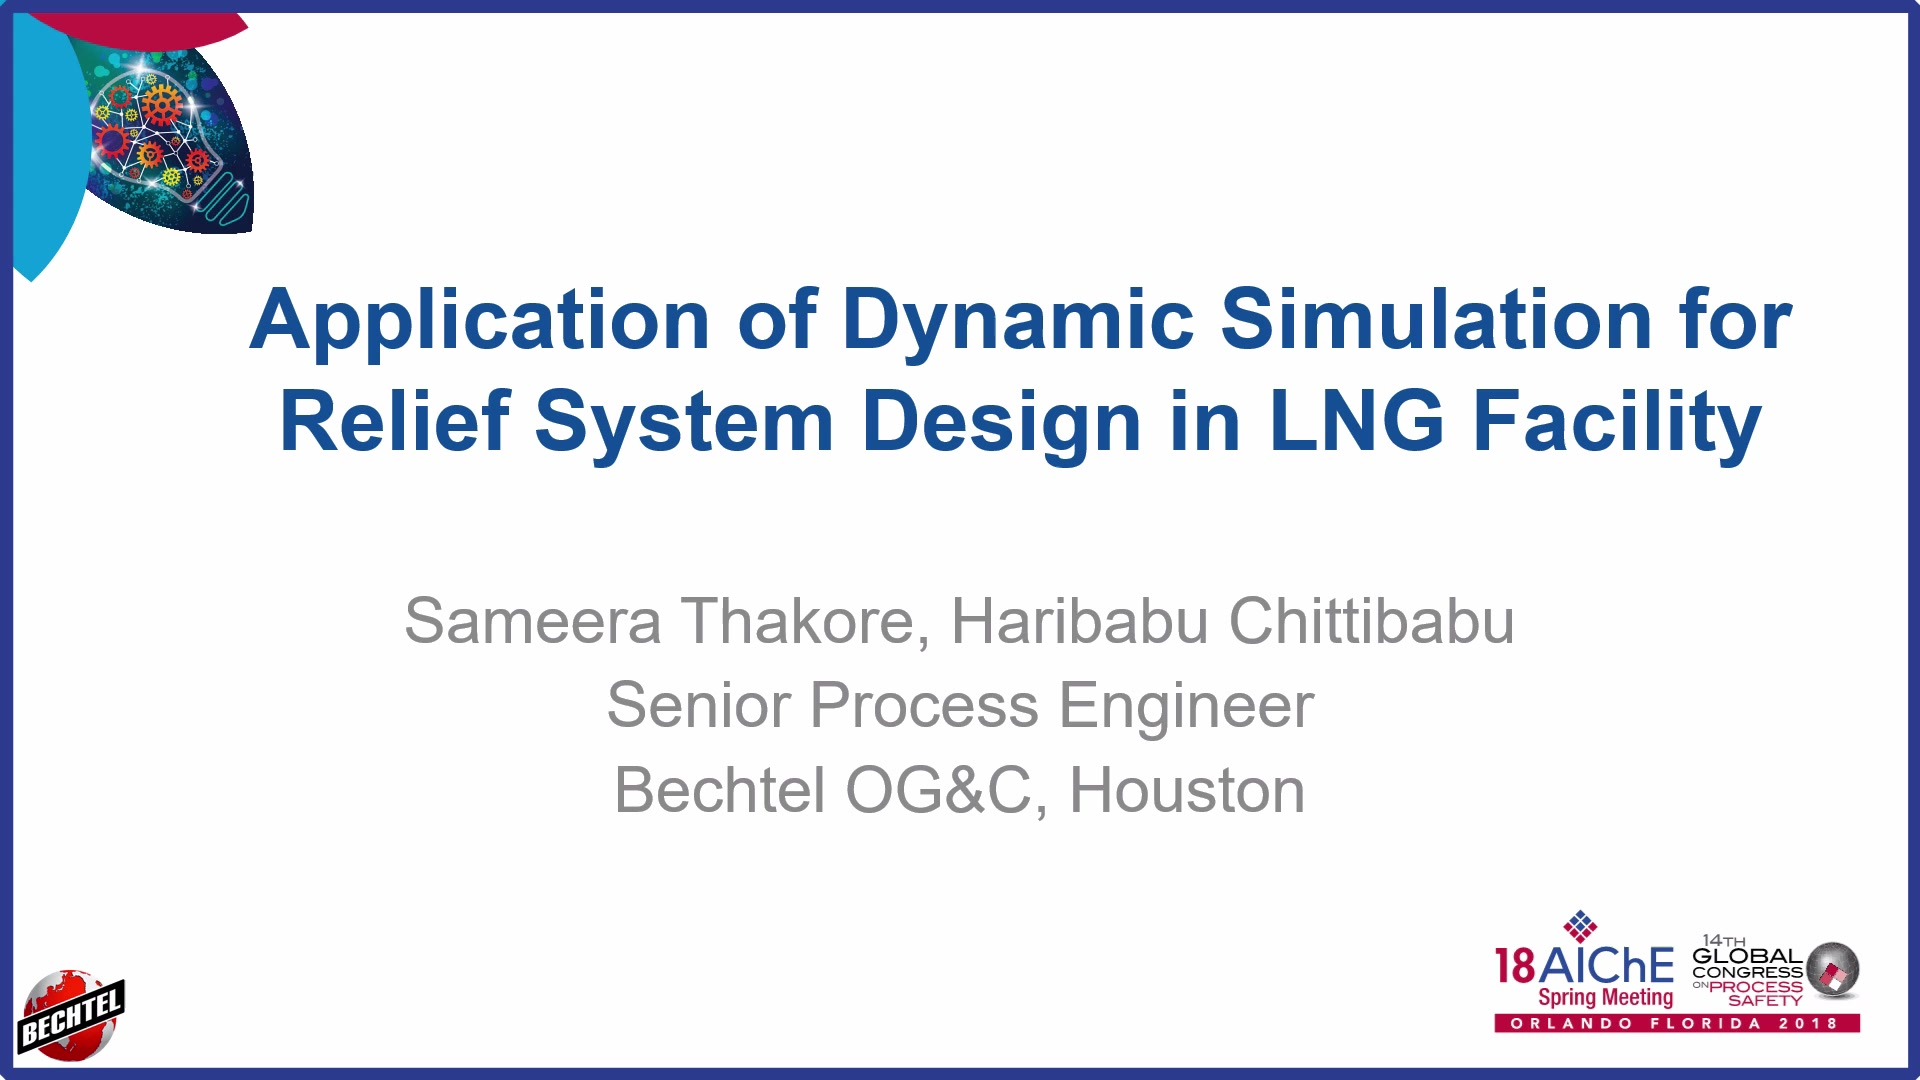 Application of Dynamic Simulation for Relief System Design